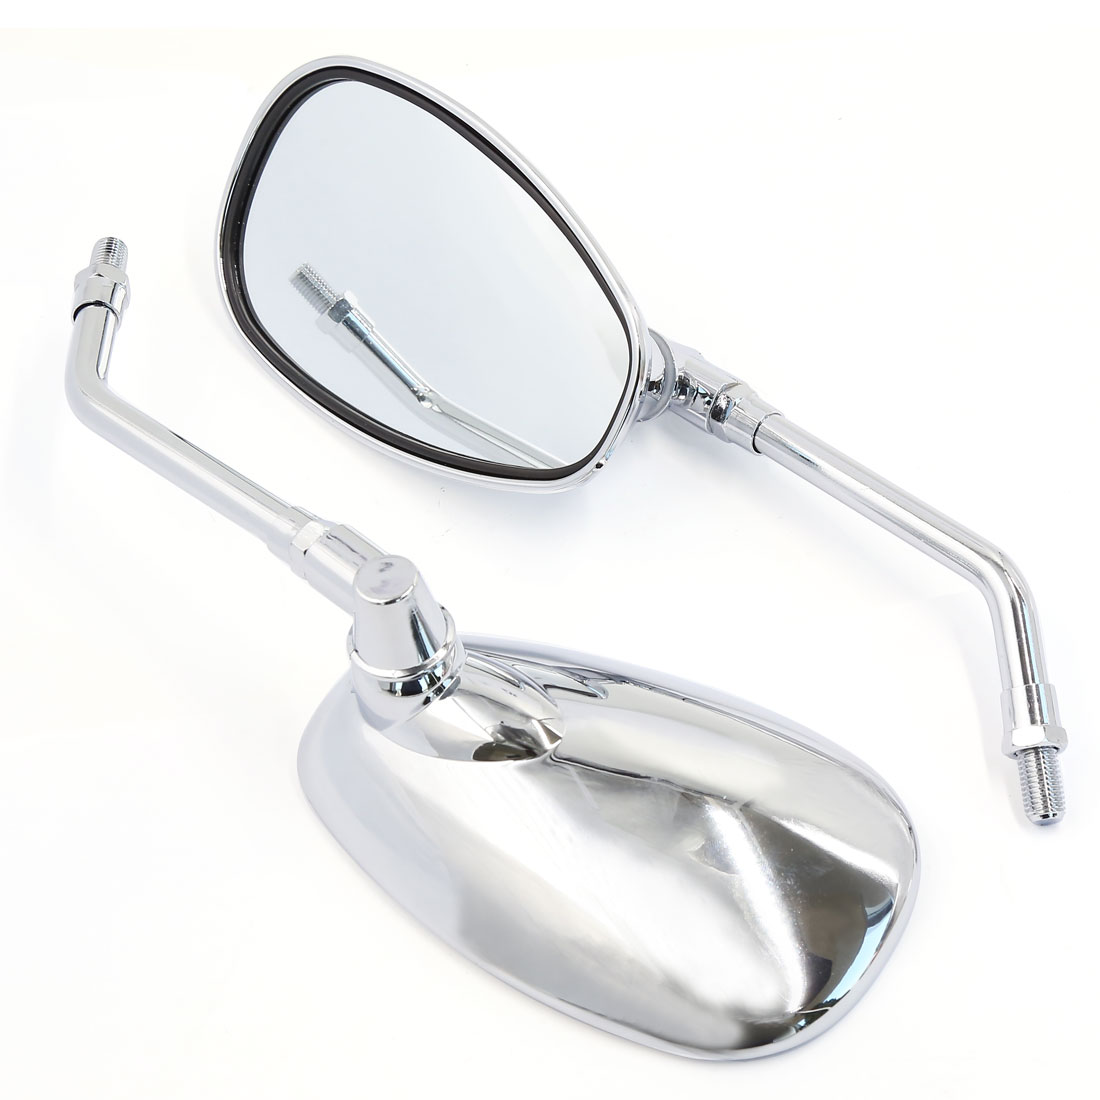 2pcs Chrome 10mm Motorcycle Rearview Mirrors For Shadow Rebel VTX VT Cruiser